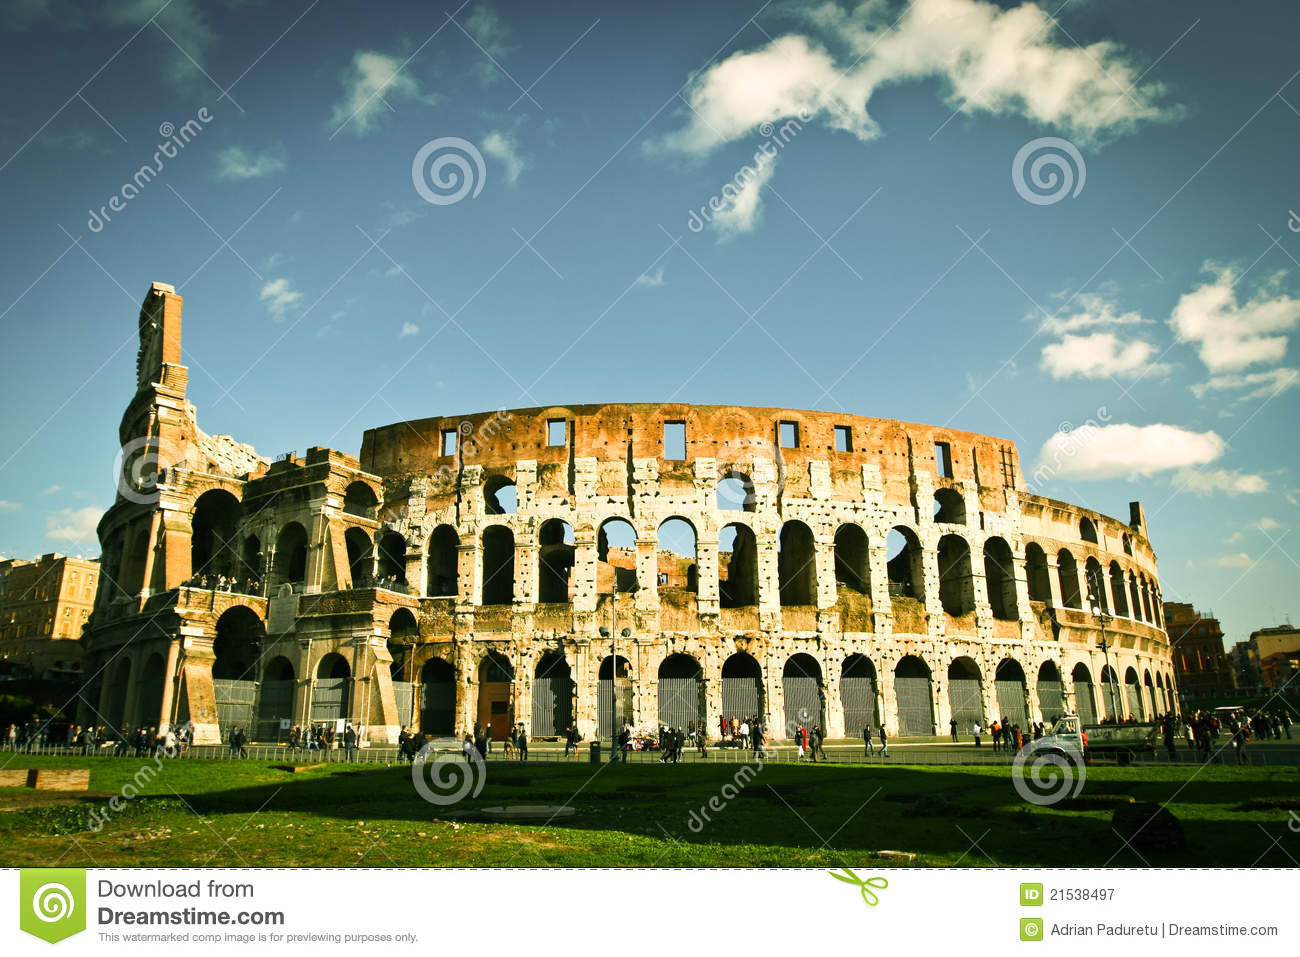 Colosseum in Rome at noon